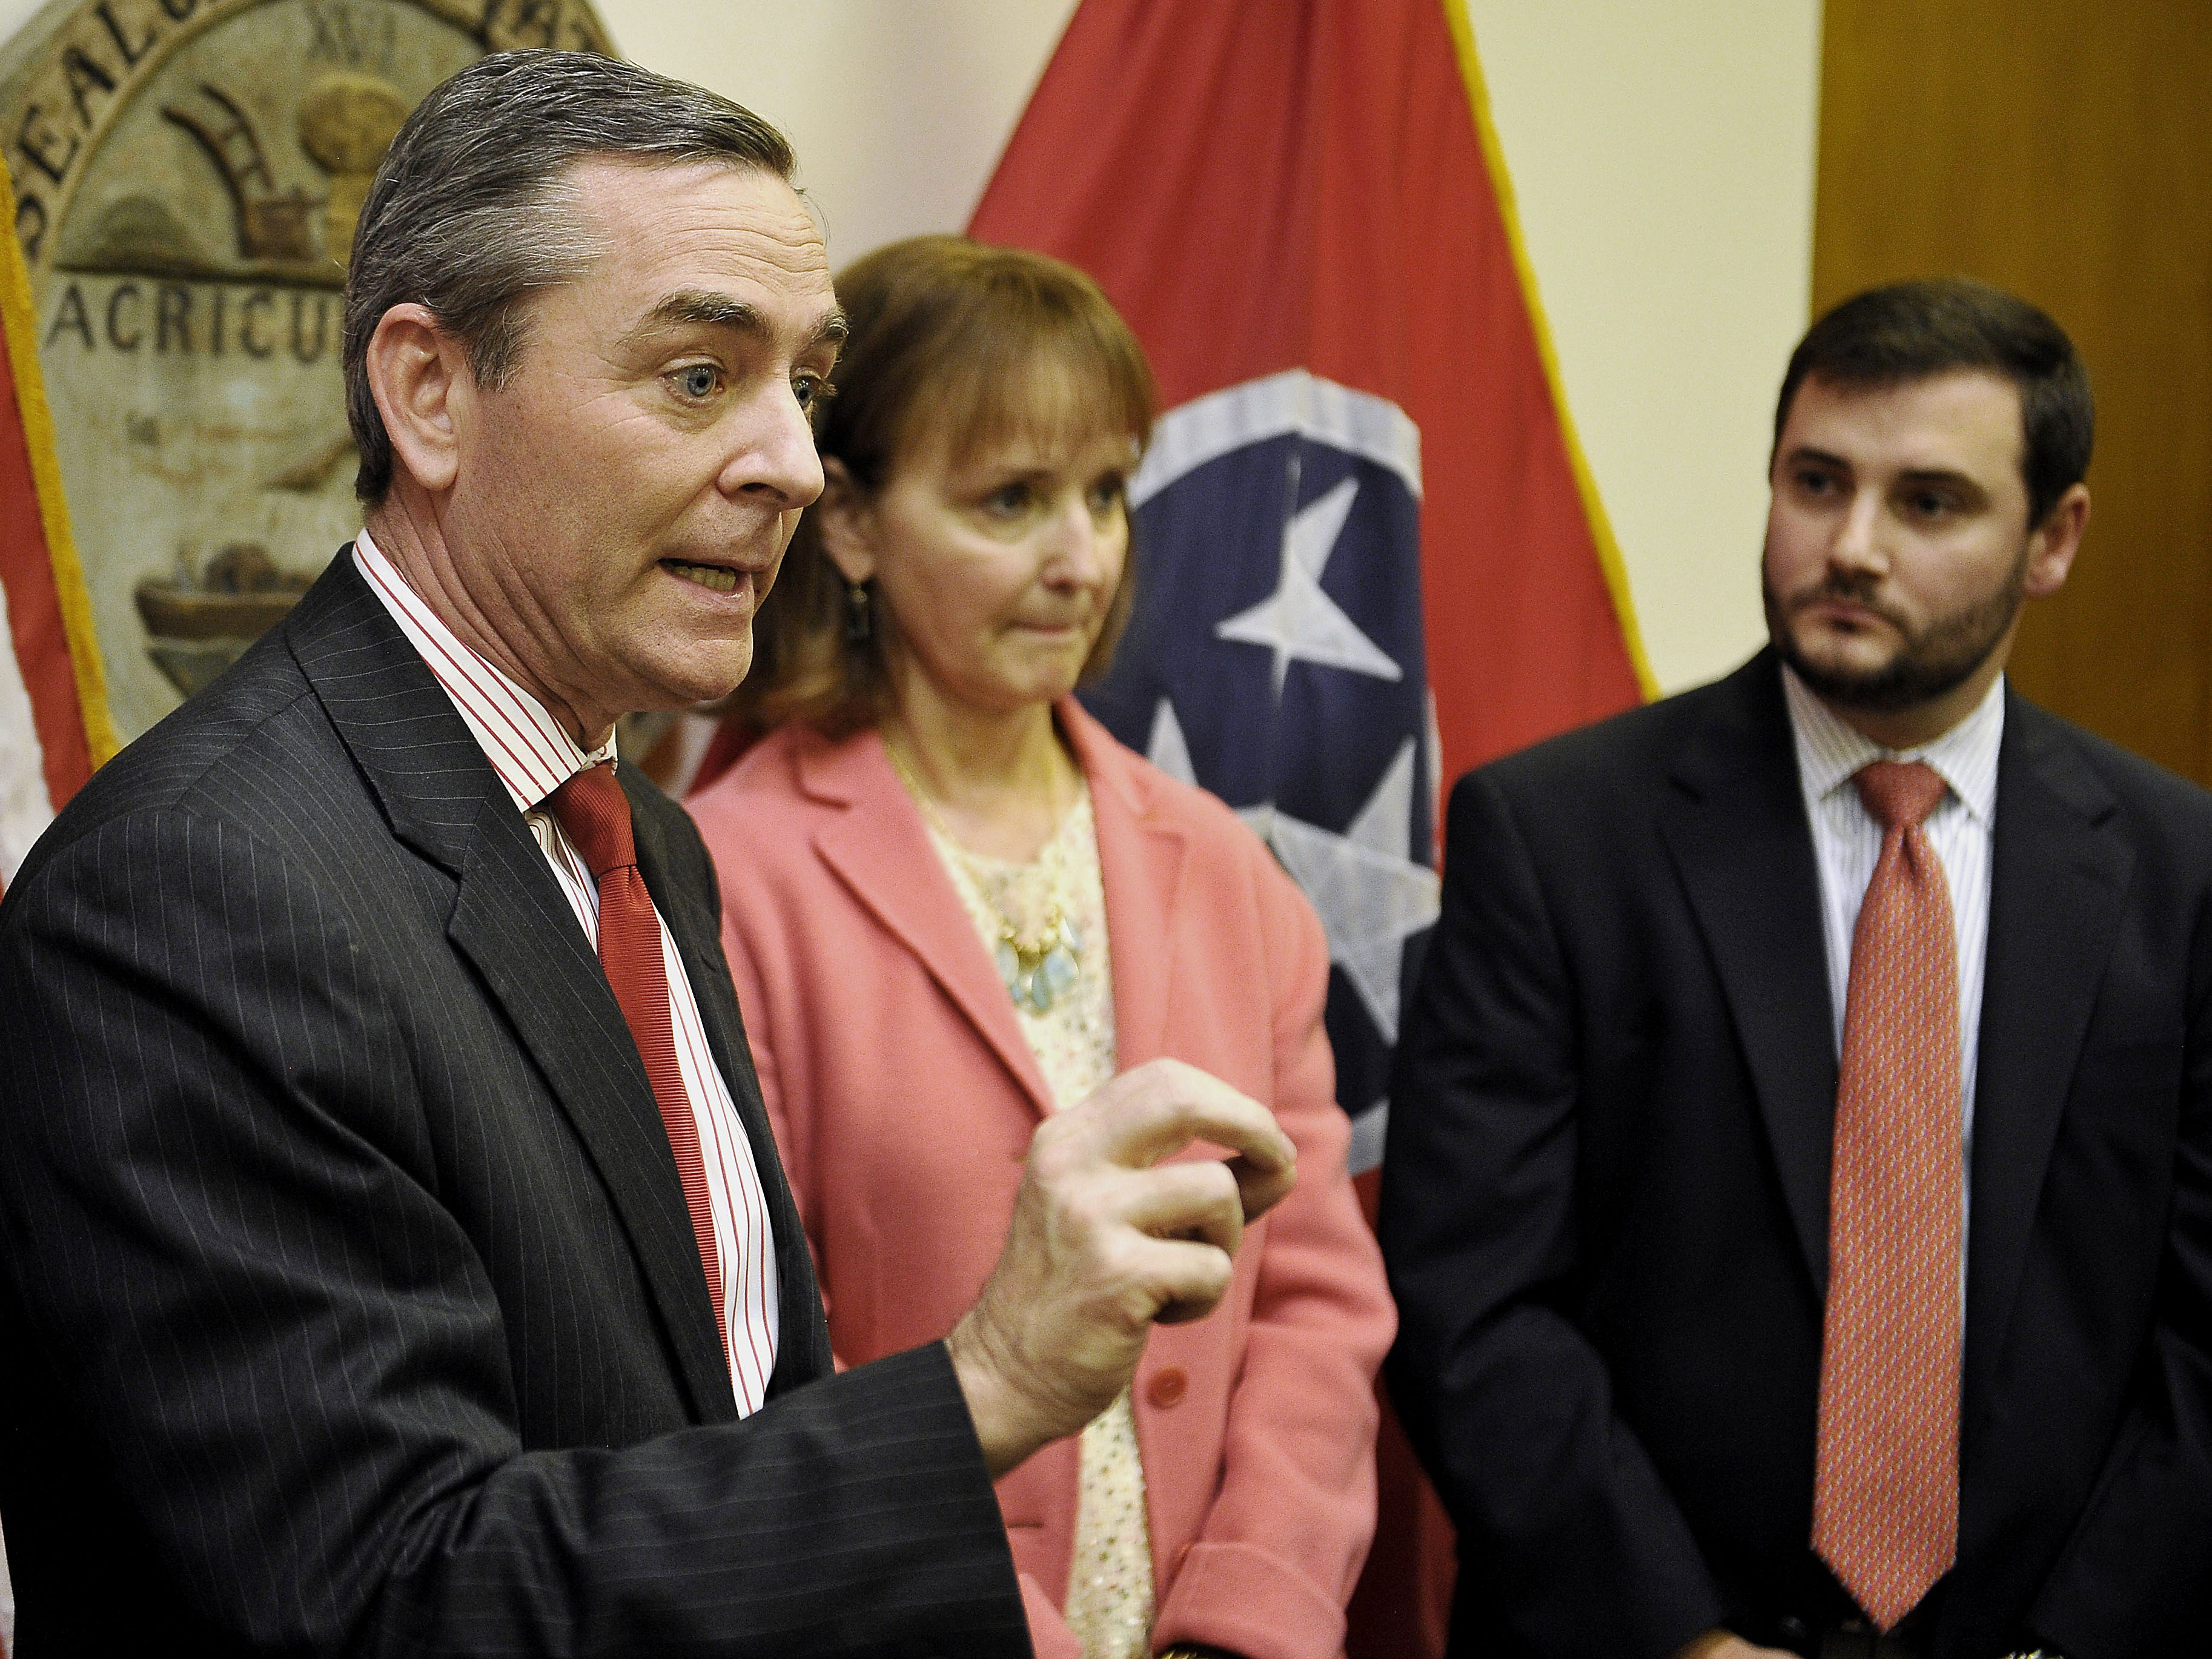 Rep. Glen Casada, House Speaker Beth Harwell and Ryan Haynes, Tennessee Republican Party chairman, call for Rep. Jeremy Durham, R-Franklin, to resign his seat in the legislature Jan. 25, 2016.